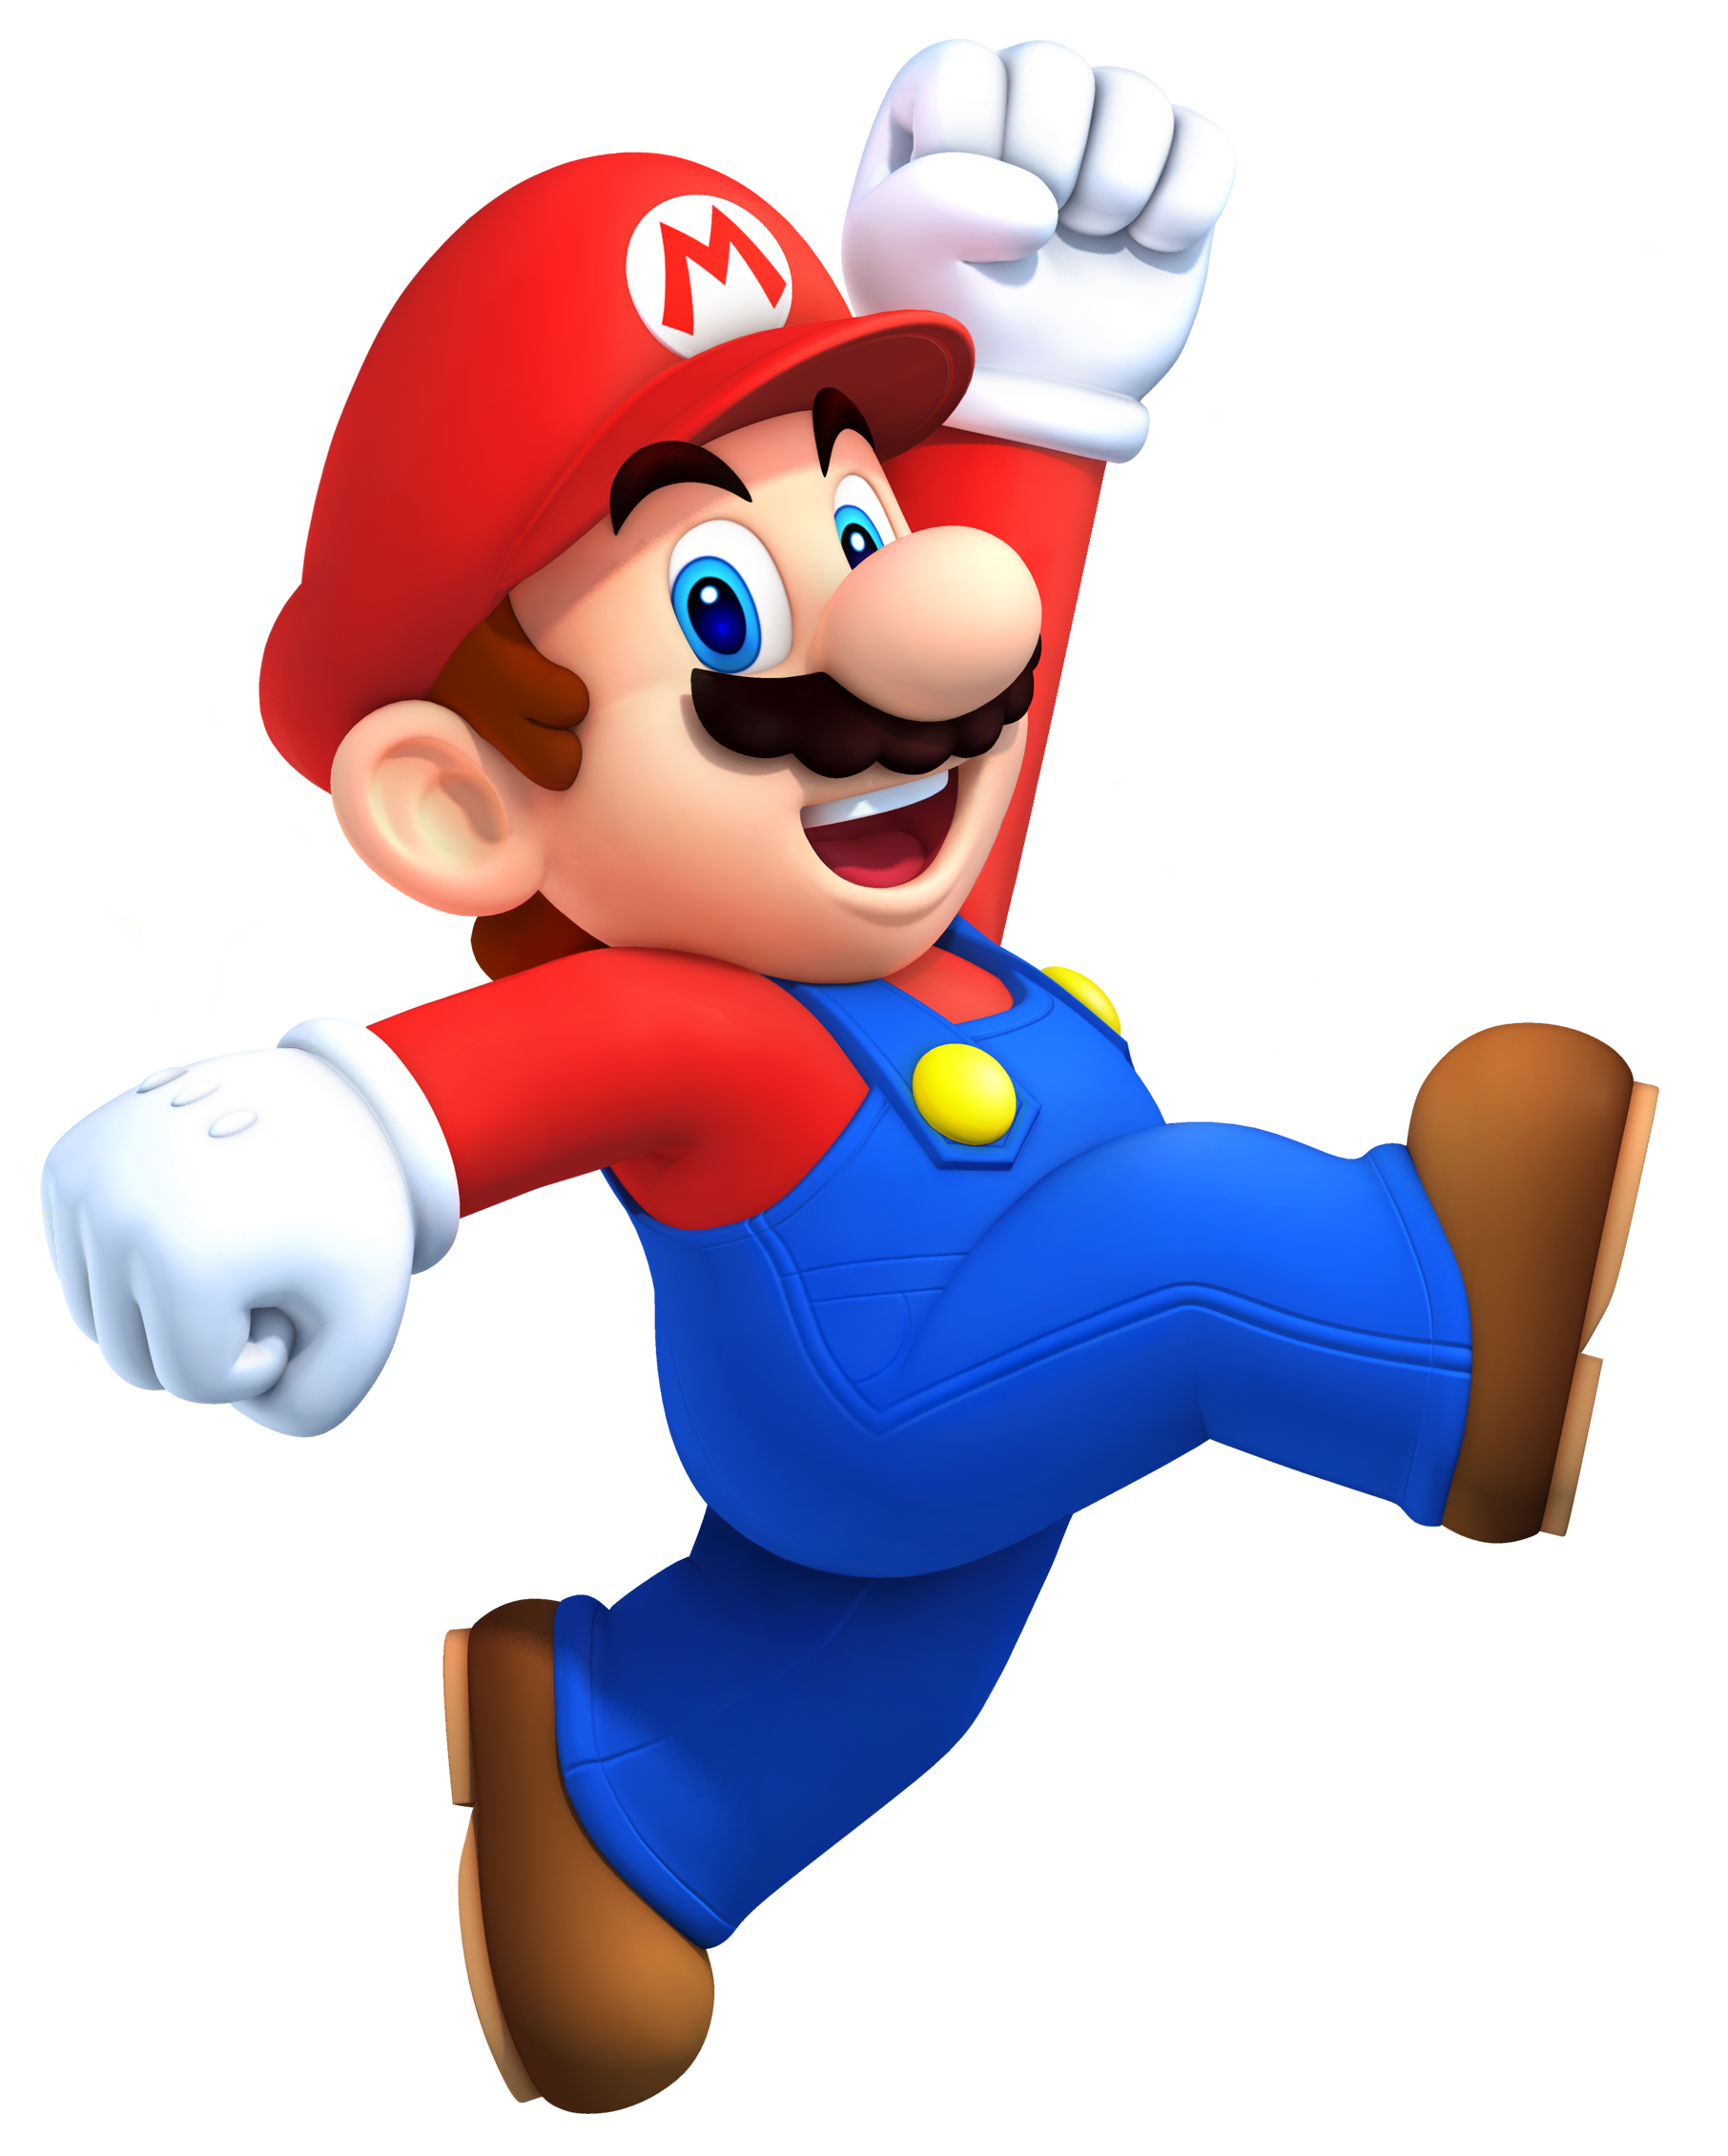 Mario_(New_Super_Mario_Bros._2)